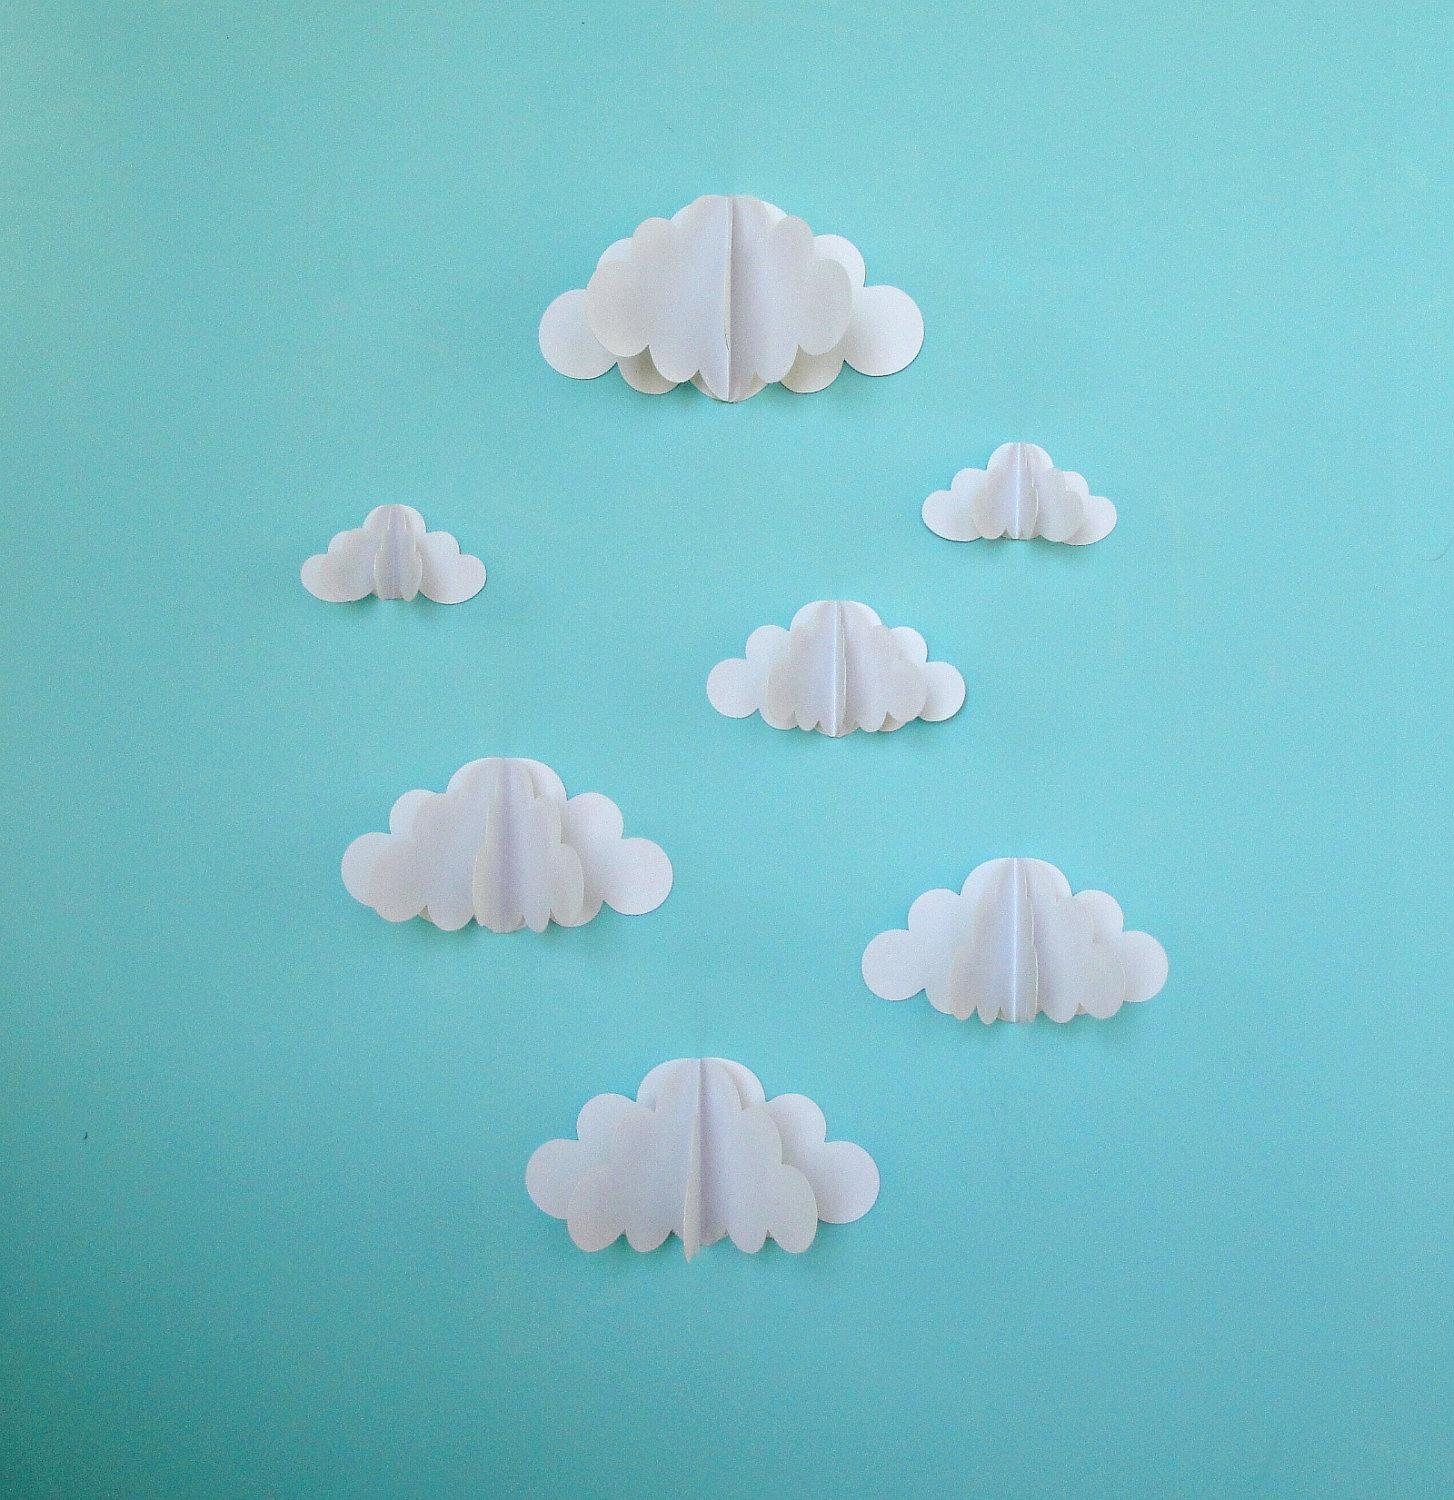 3D Paper Wall Clouds 3D Paper Wall Art/wall Decor/wall Throughout 3D Paper Wall Art (Image 4 of 20)